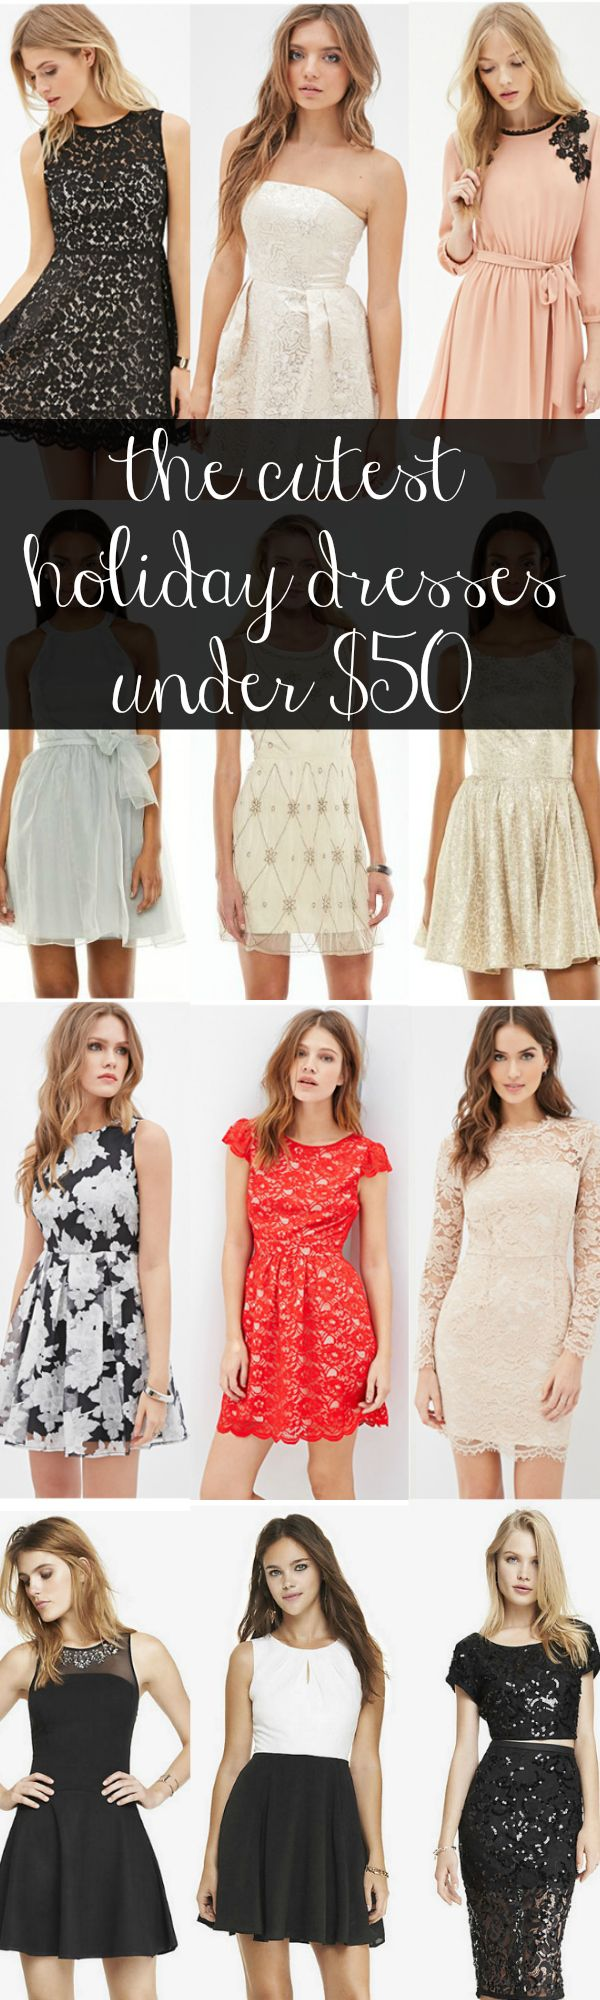 The cutest holiday party dresses under $50 + save even more with @shopular! #sp